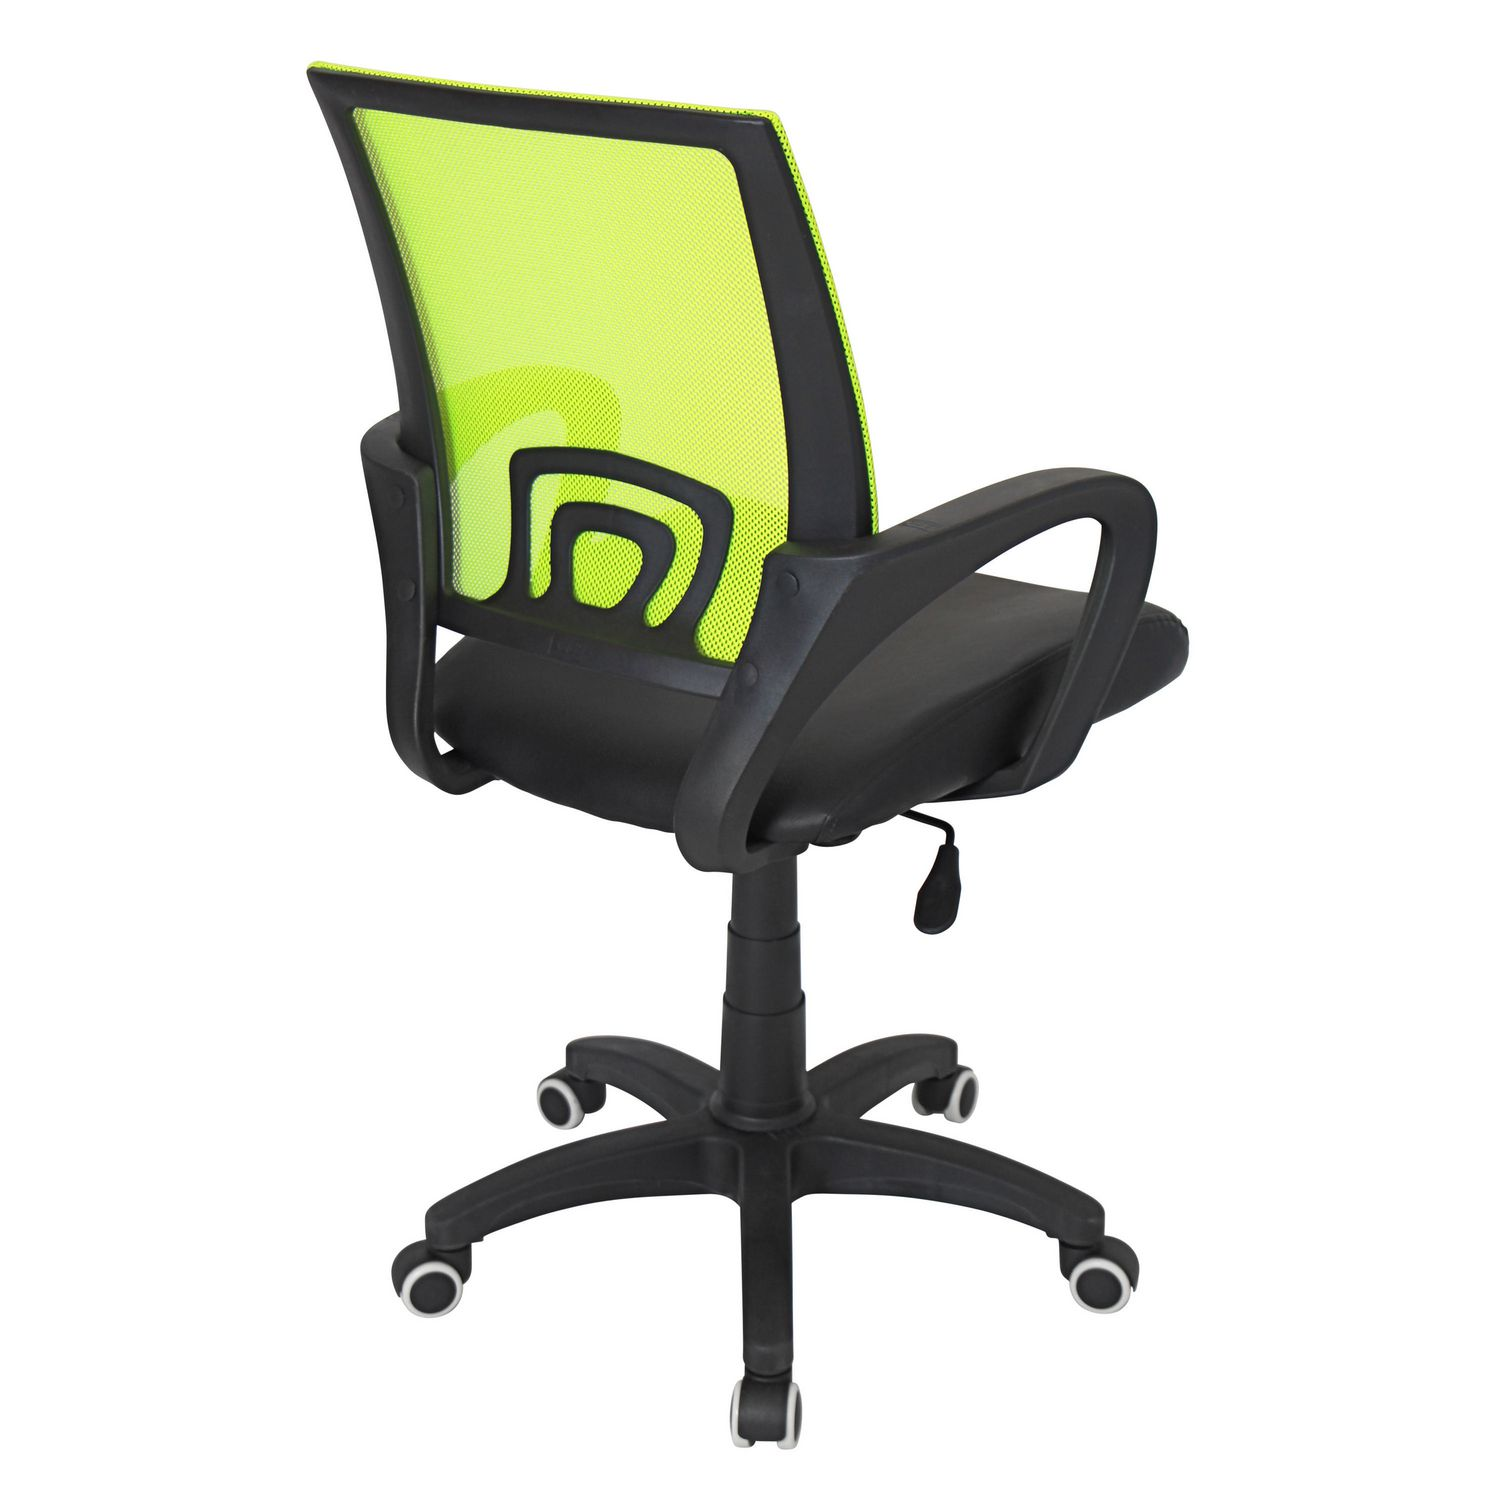 lumisource officer lime green office chair walmart canada